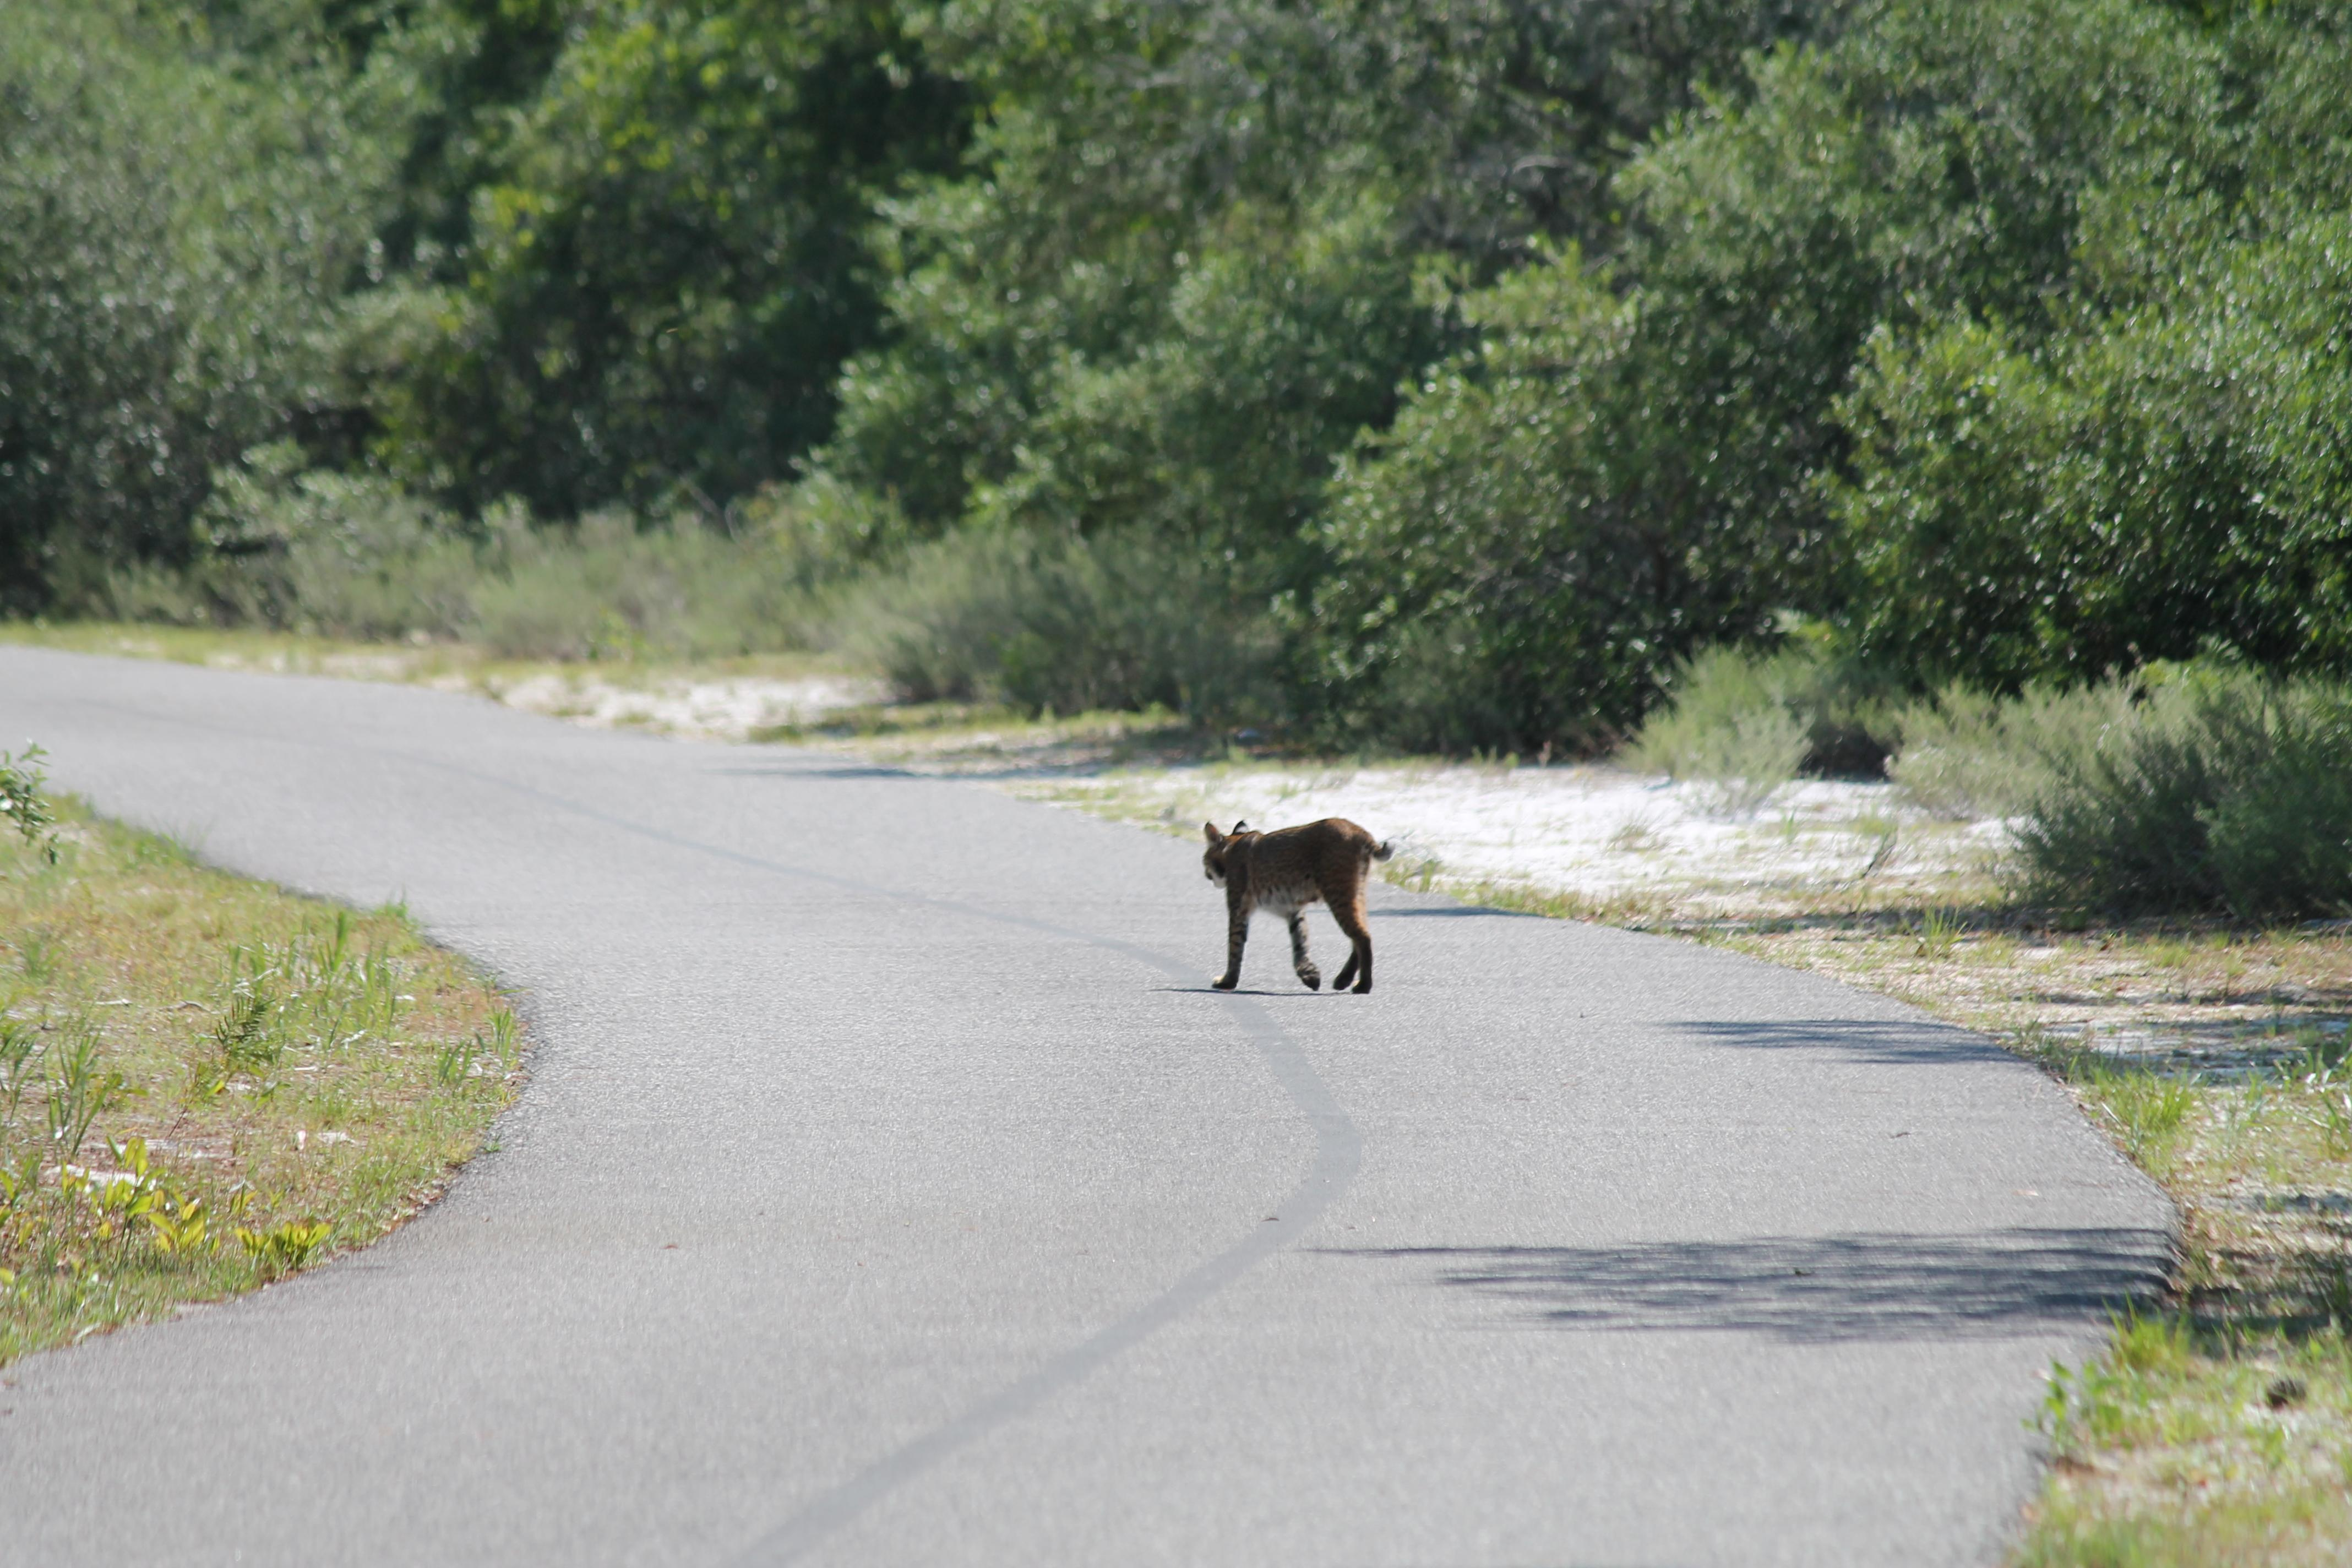 Bobcat Crossing Rosemary Dunes Trail. Photo by Farren Dell